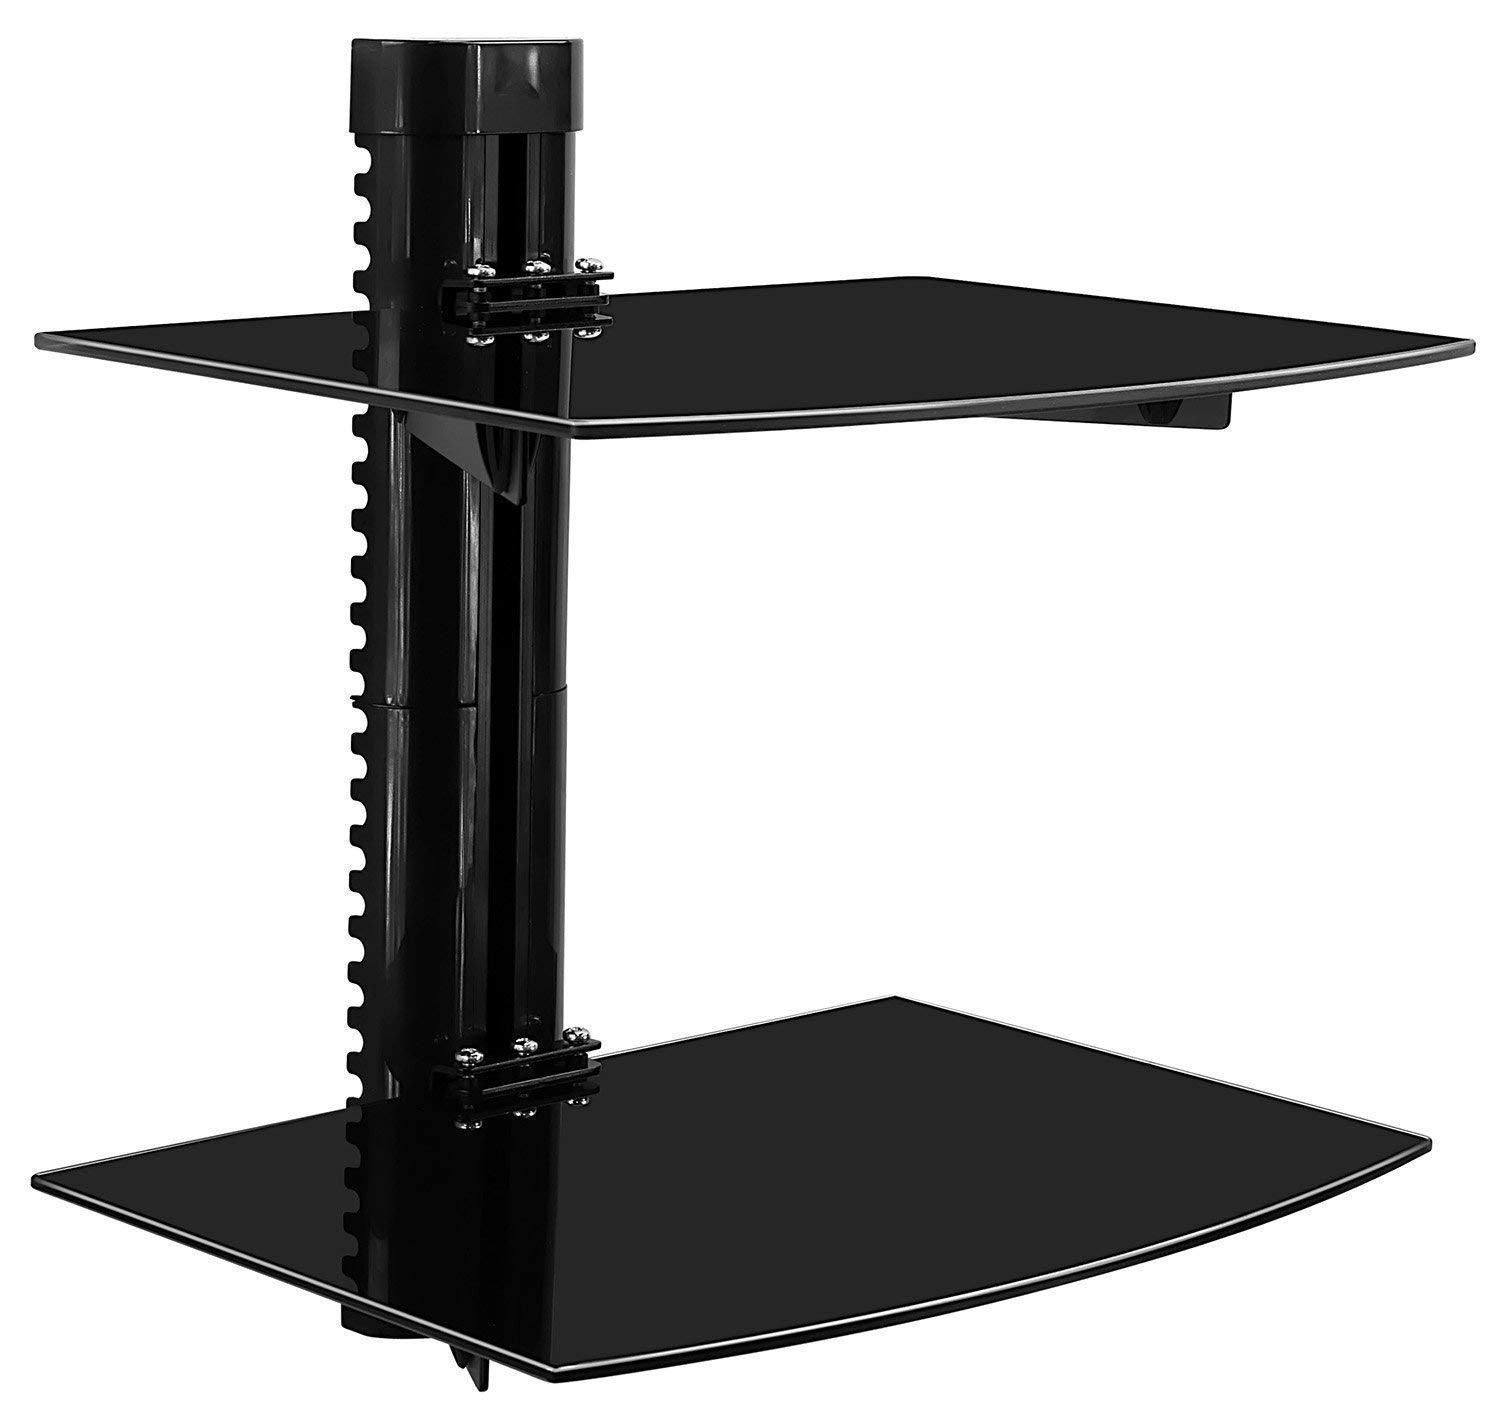 Mount-It! Floating Wall Mounted Shelf Bracket Stand for AV Receiver, Component, Cable Box, Playstation4, Xbox1, DVD Player, Projector, 35.2 Lbs Capacity, 2 Shelves, Tinted Tempered Glass by Mount-It!